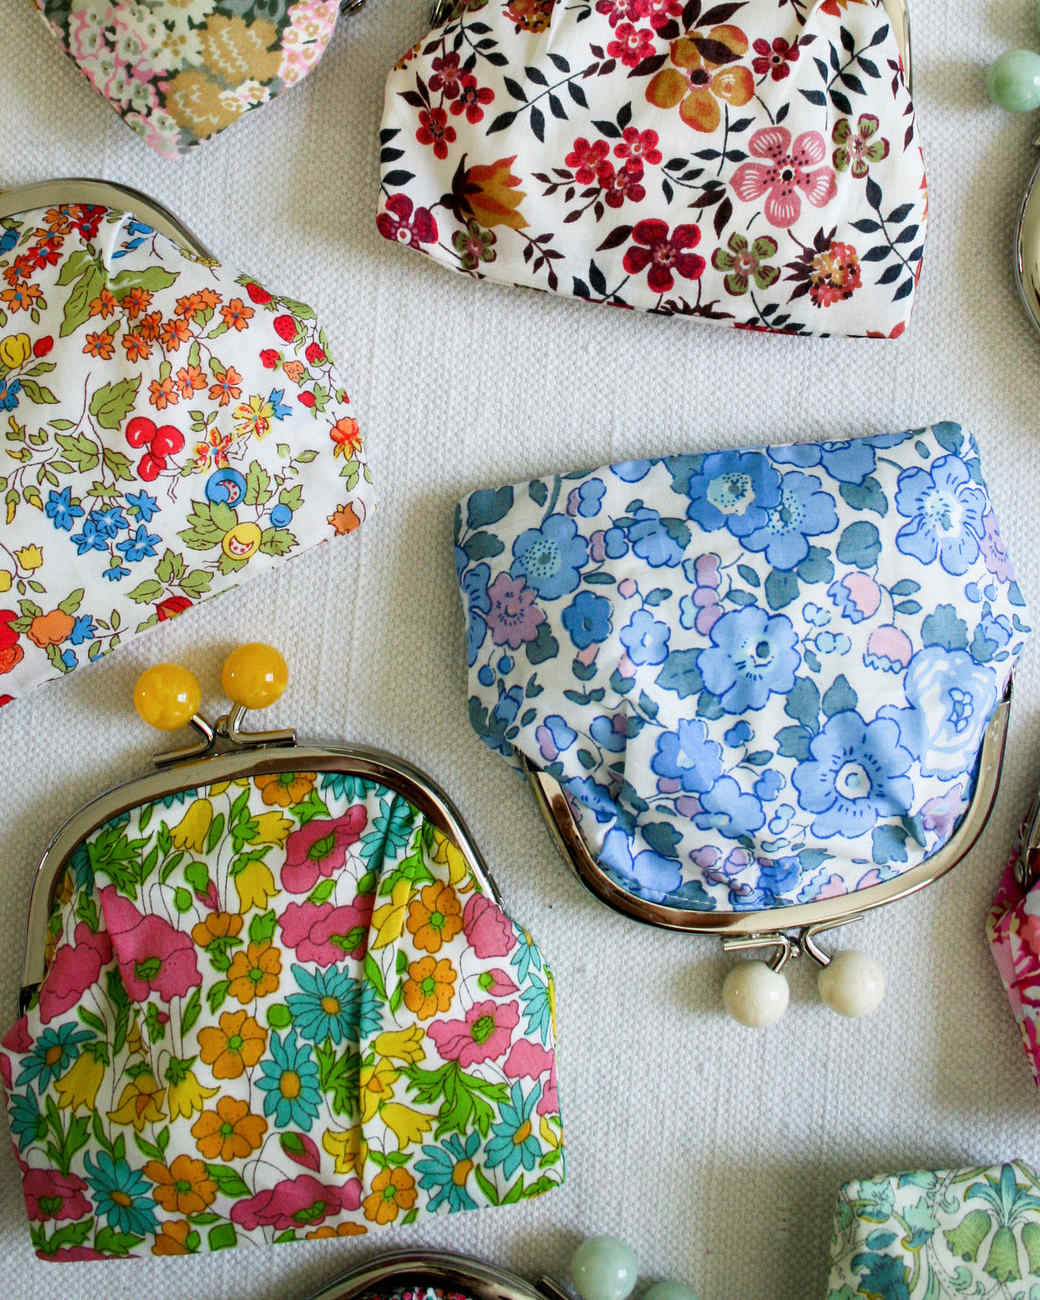 pearl-soho-liberty-coin-purse-kit-0414.jpg